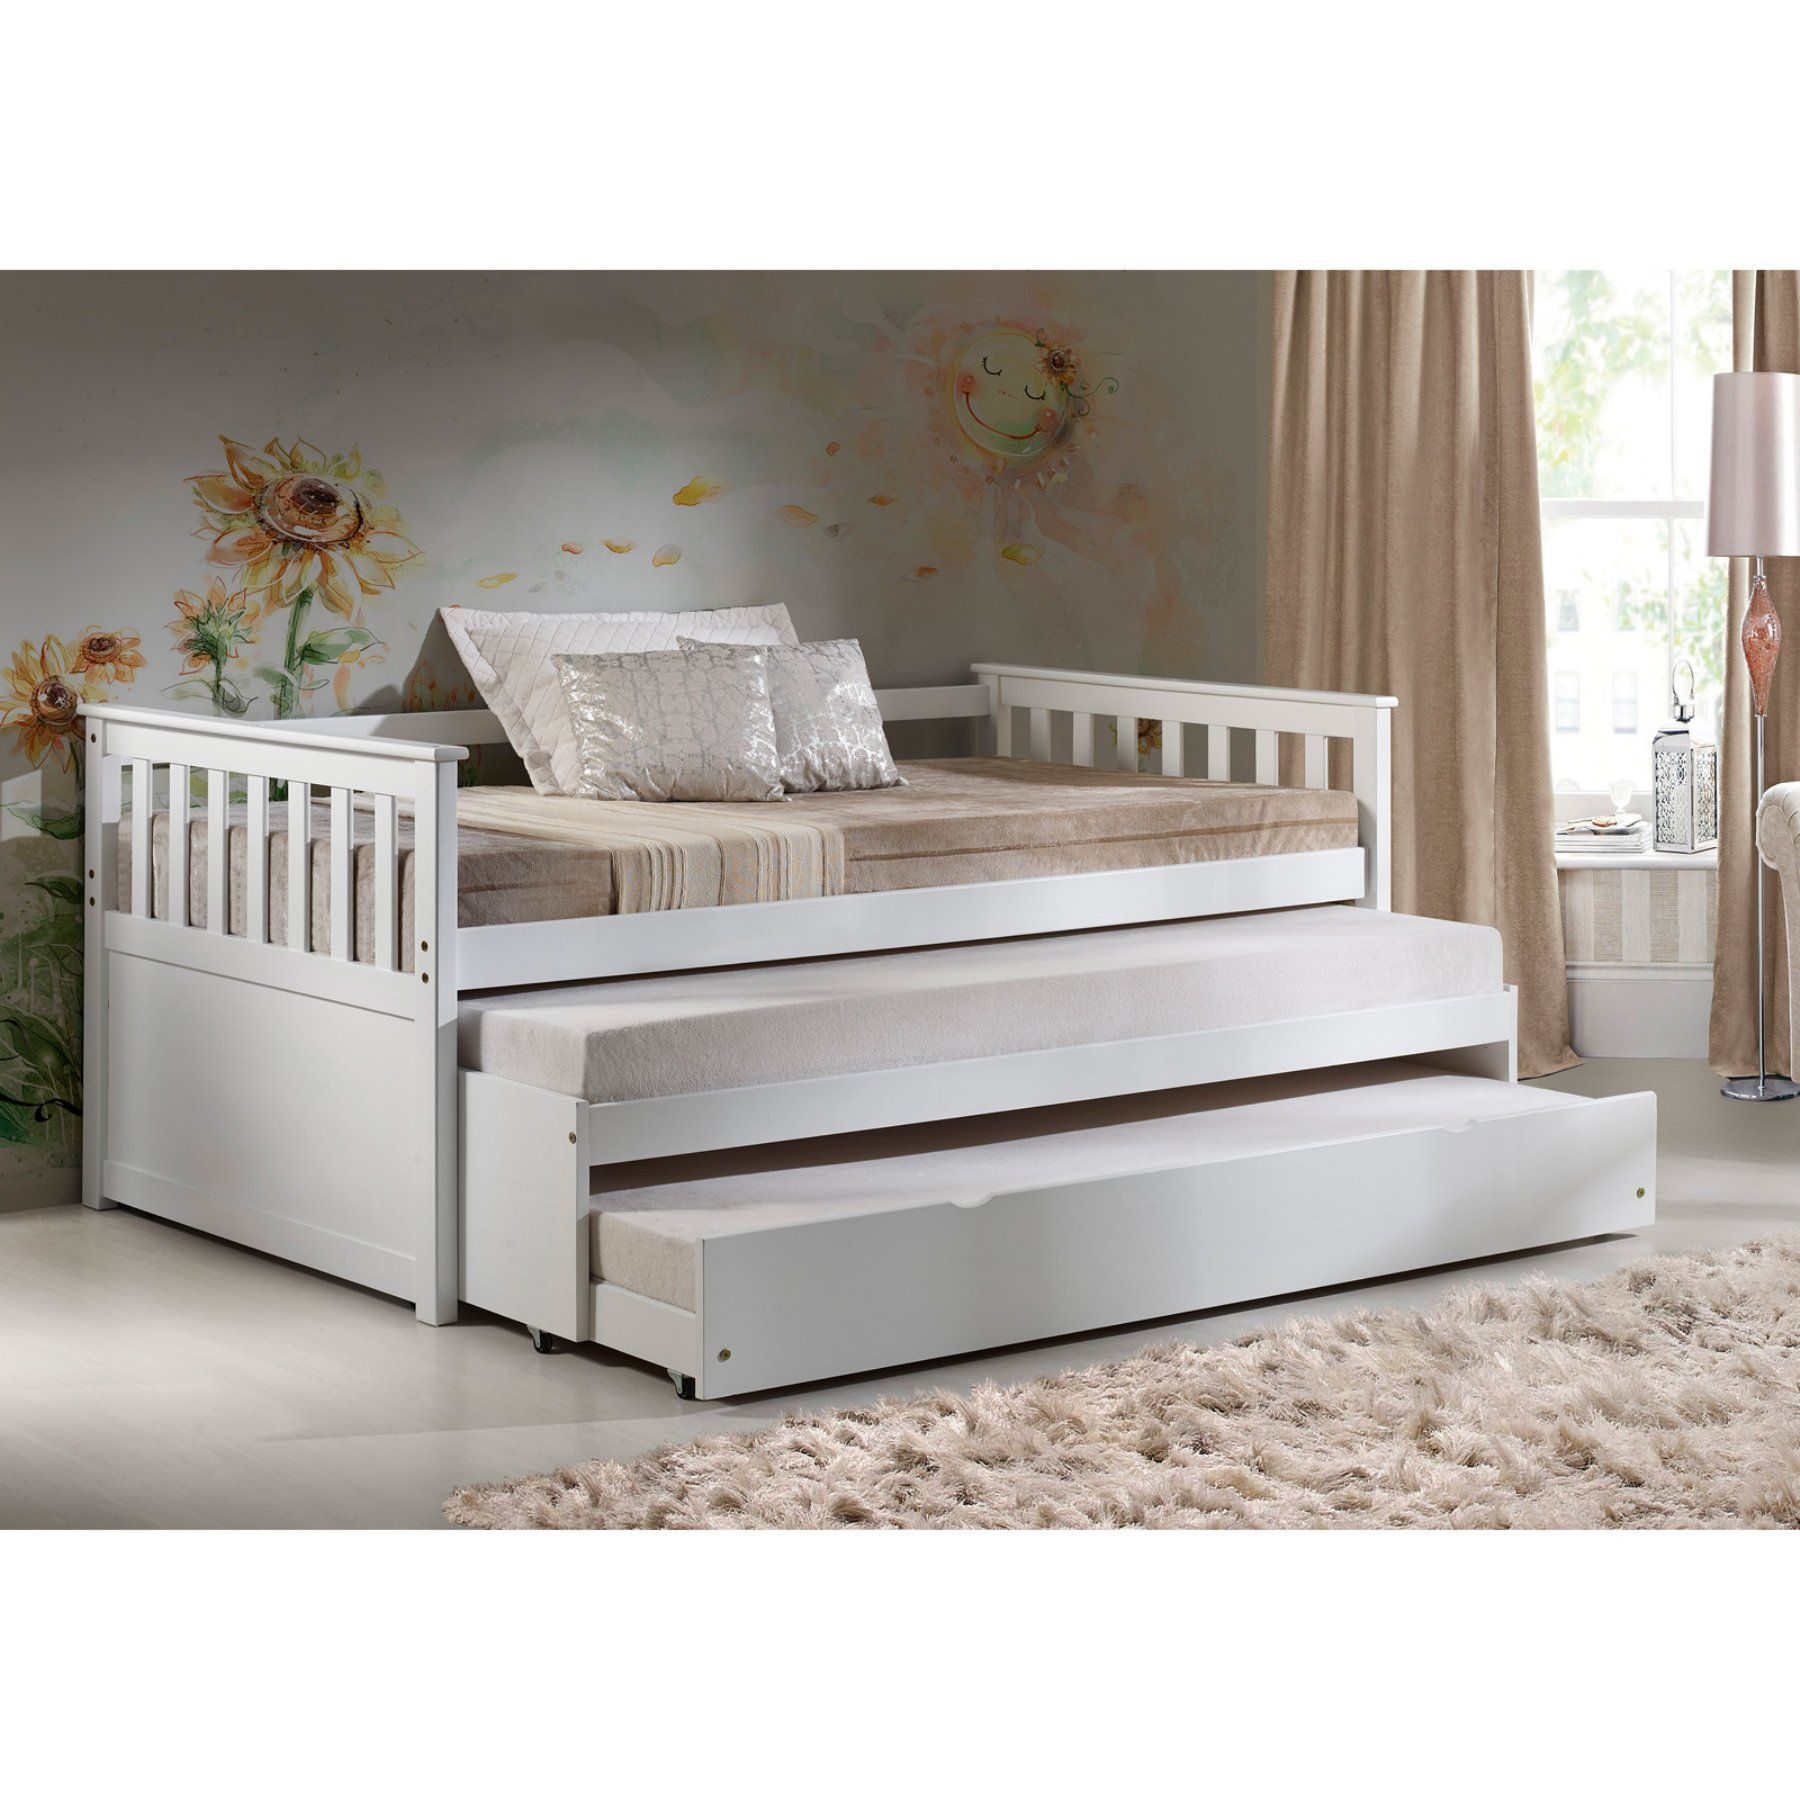 Acme Furniture Cominia Wooden Daybed With Pull Out Bed And